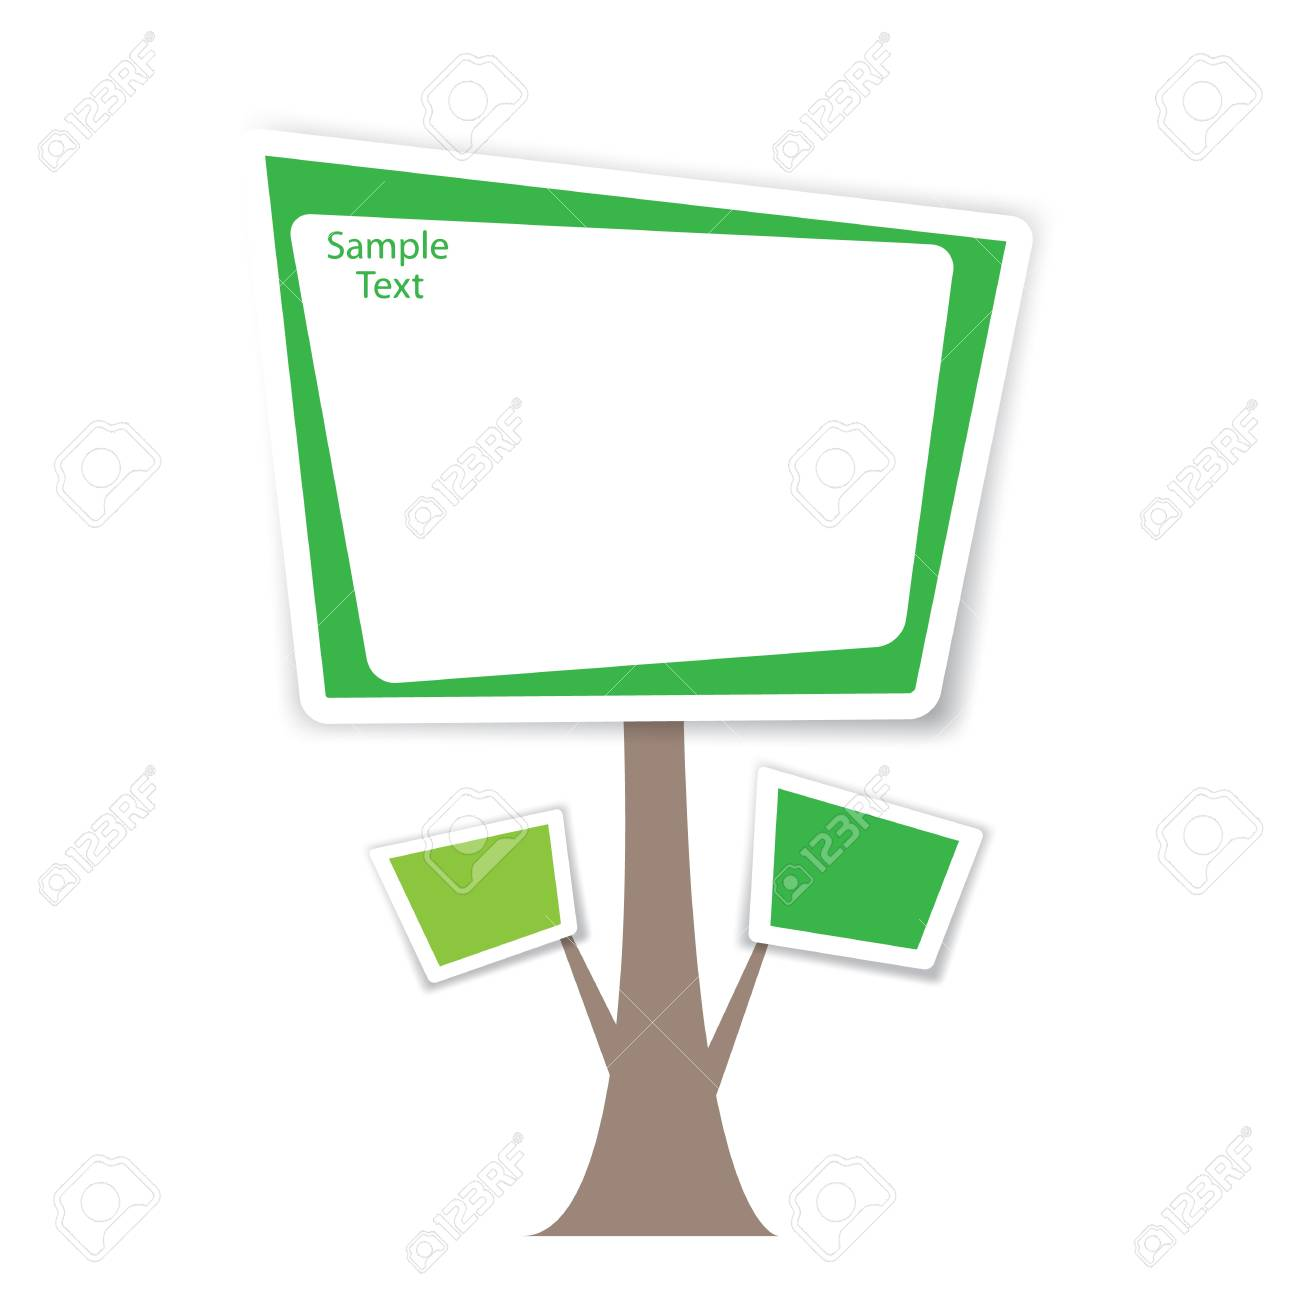 tree vector Stock Vector - 17521858